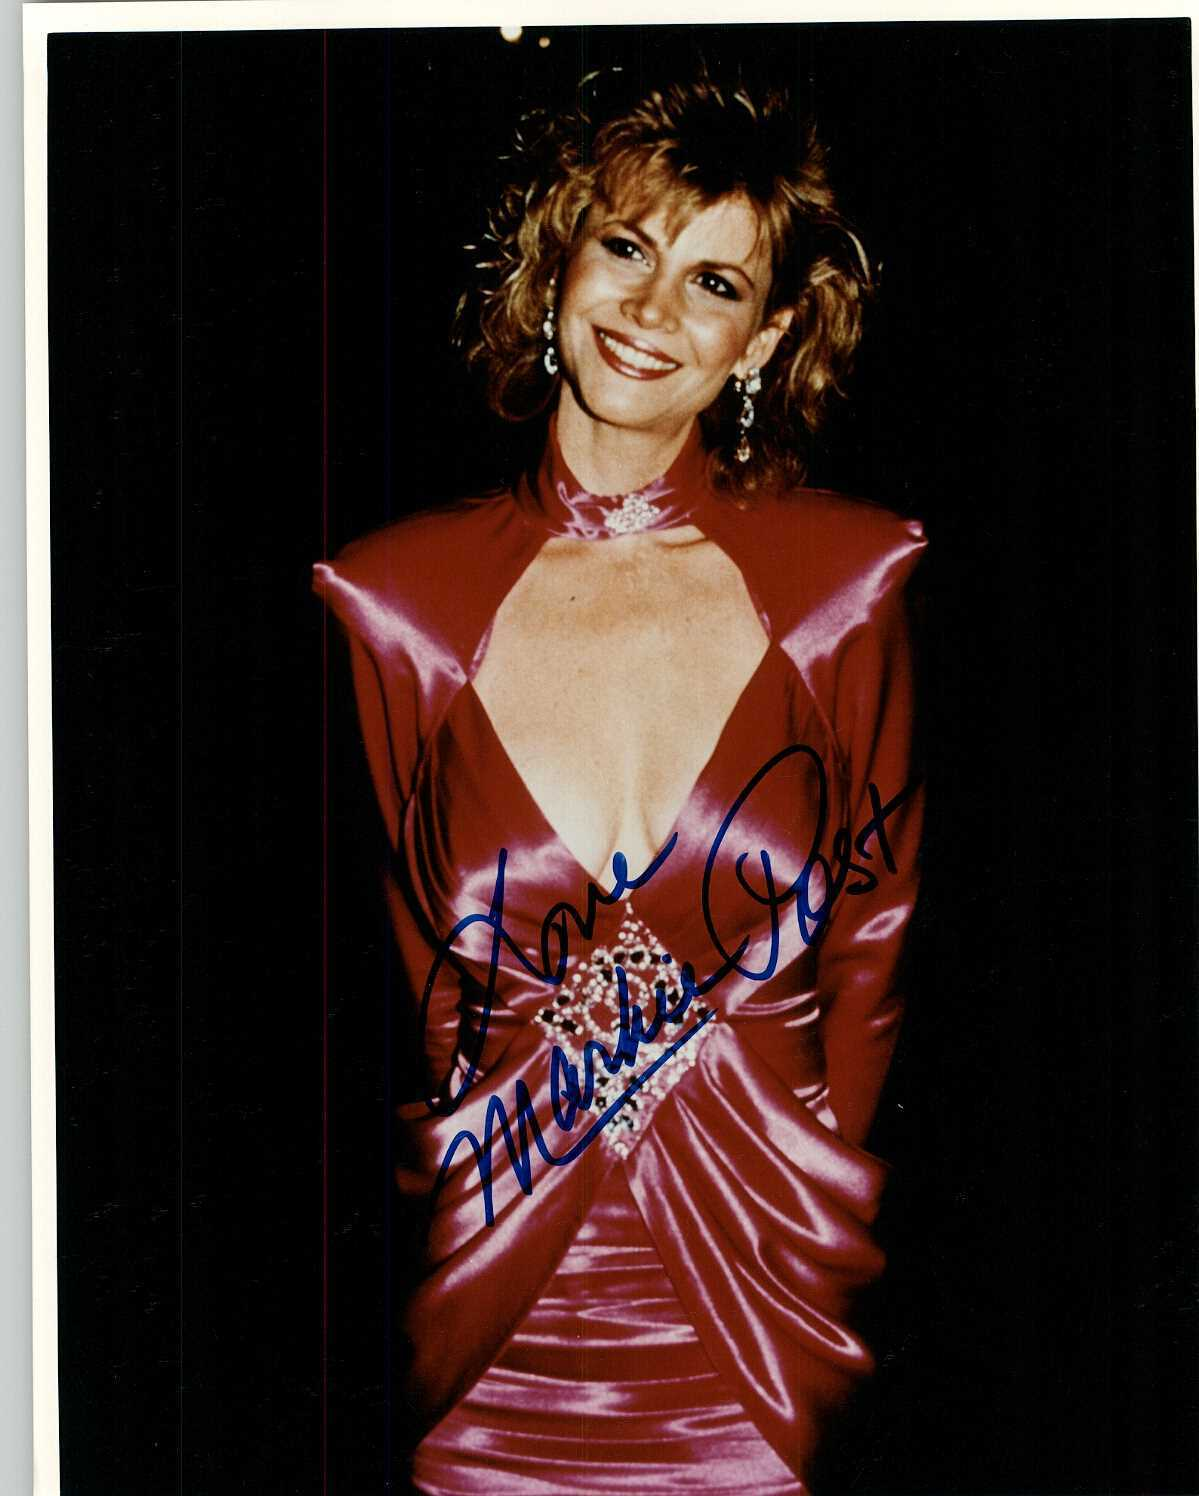 Markie Post Signed Autographed Glossy 8x10 Photo